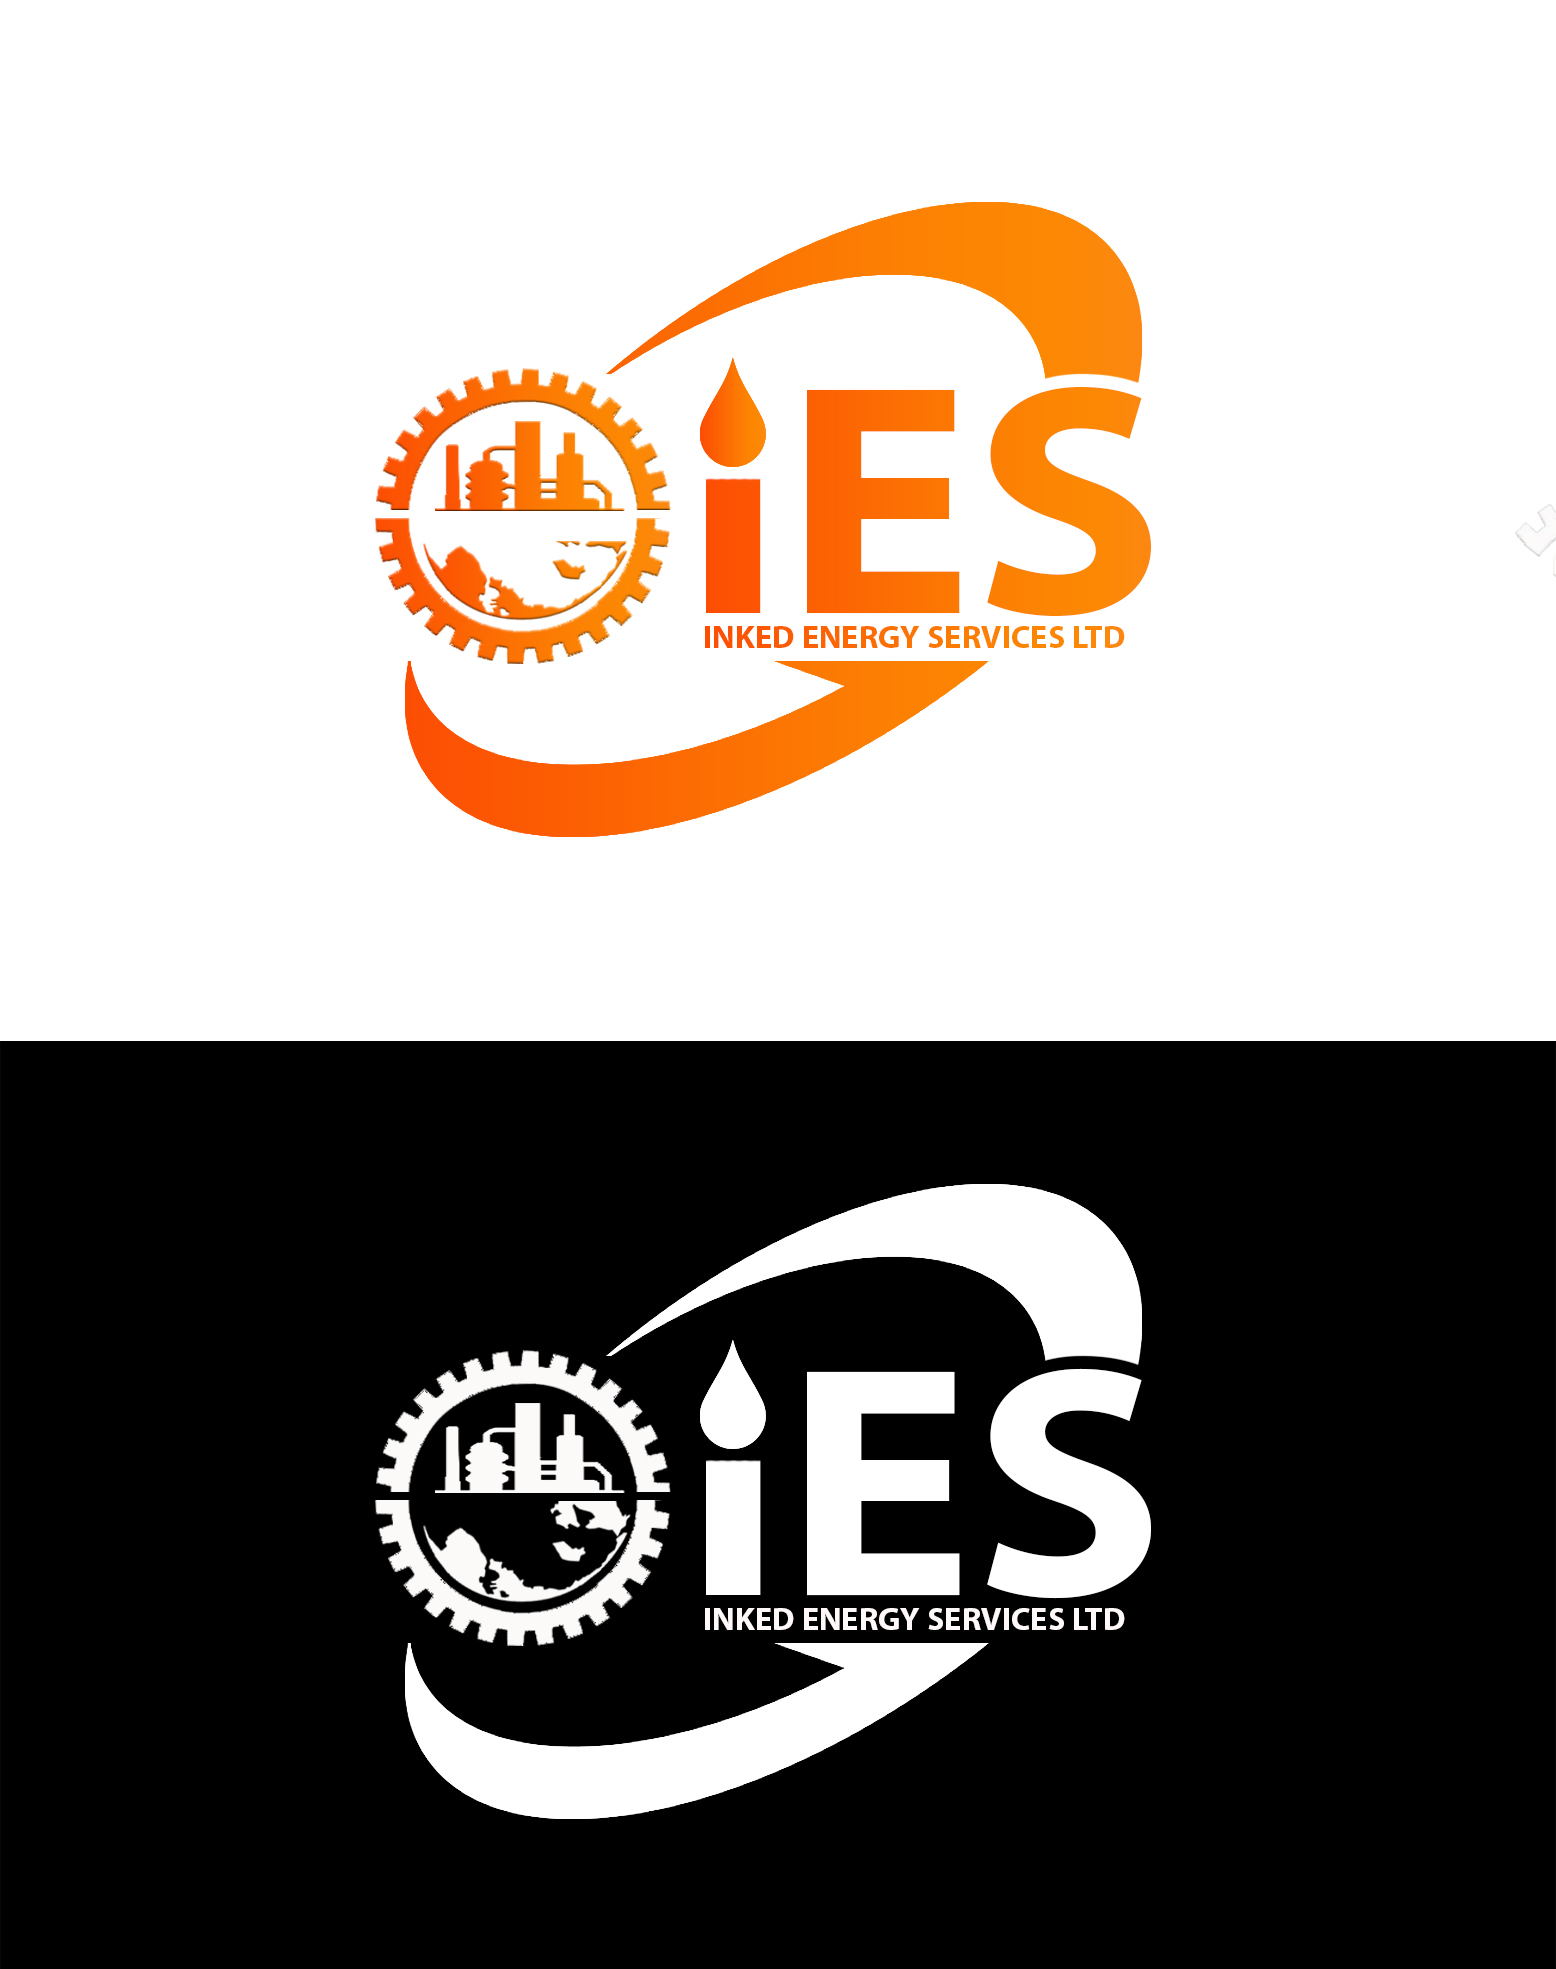 Logo Design by JSDESIGNGROUP - Entry No. 114 in the Logo Design Contest Creative Logo Design for INKED ENERGY SERVICES LTD.